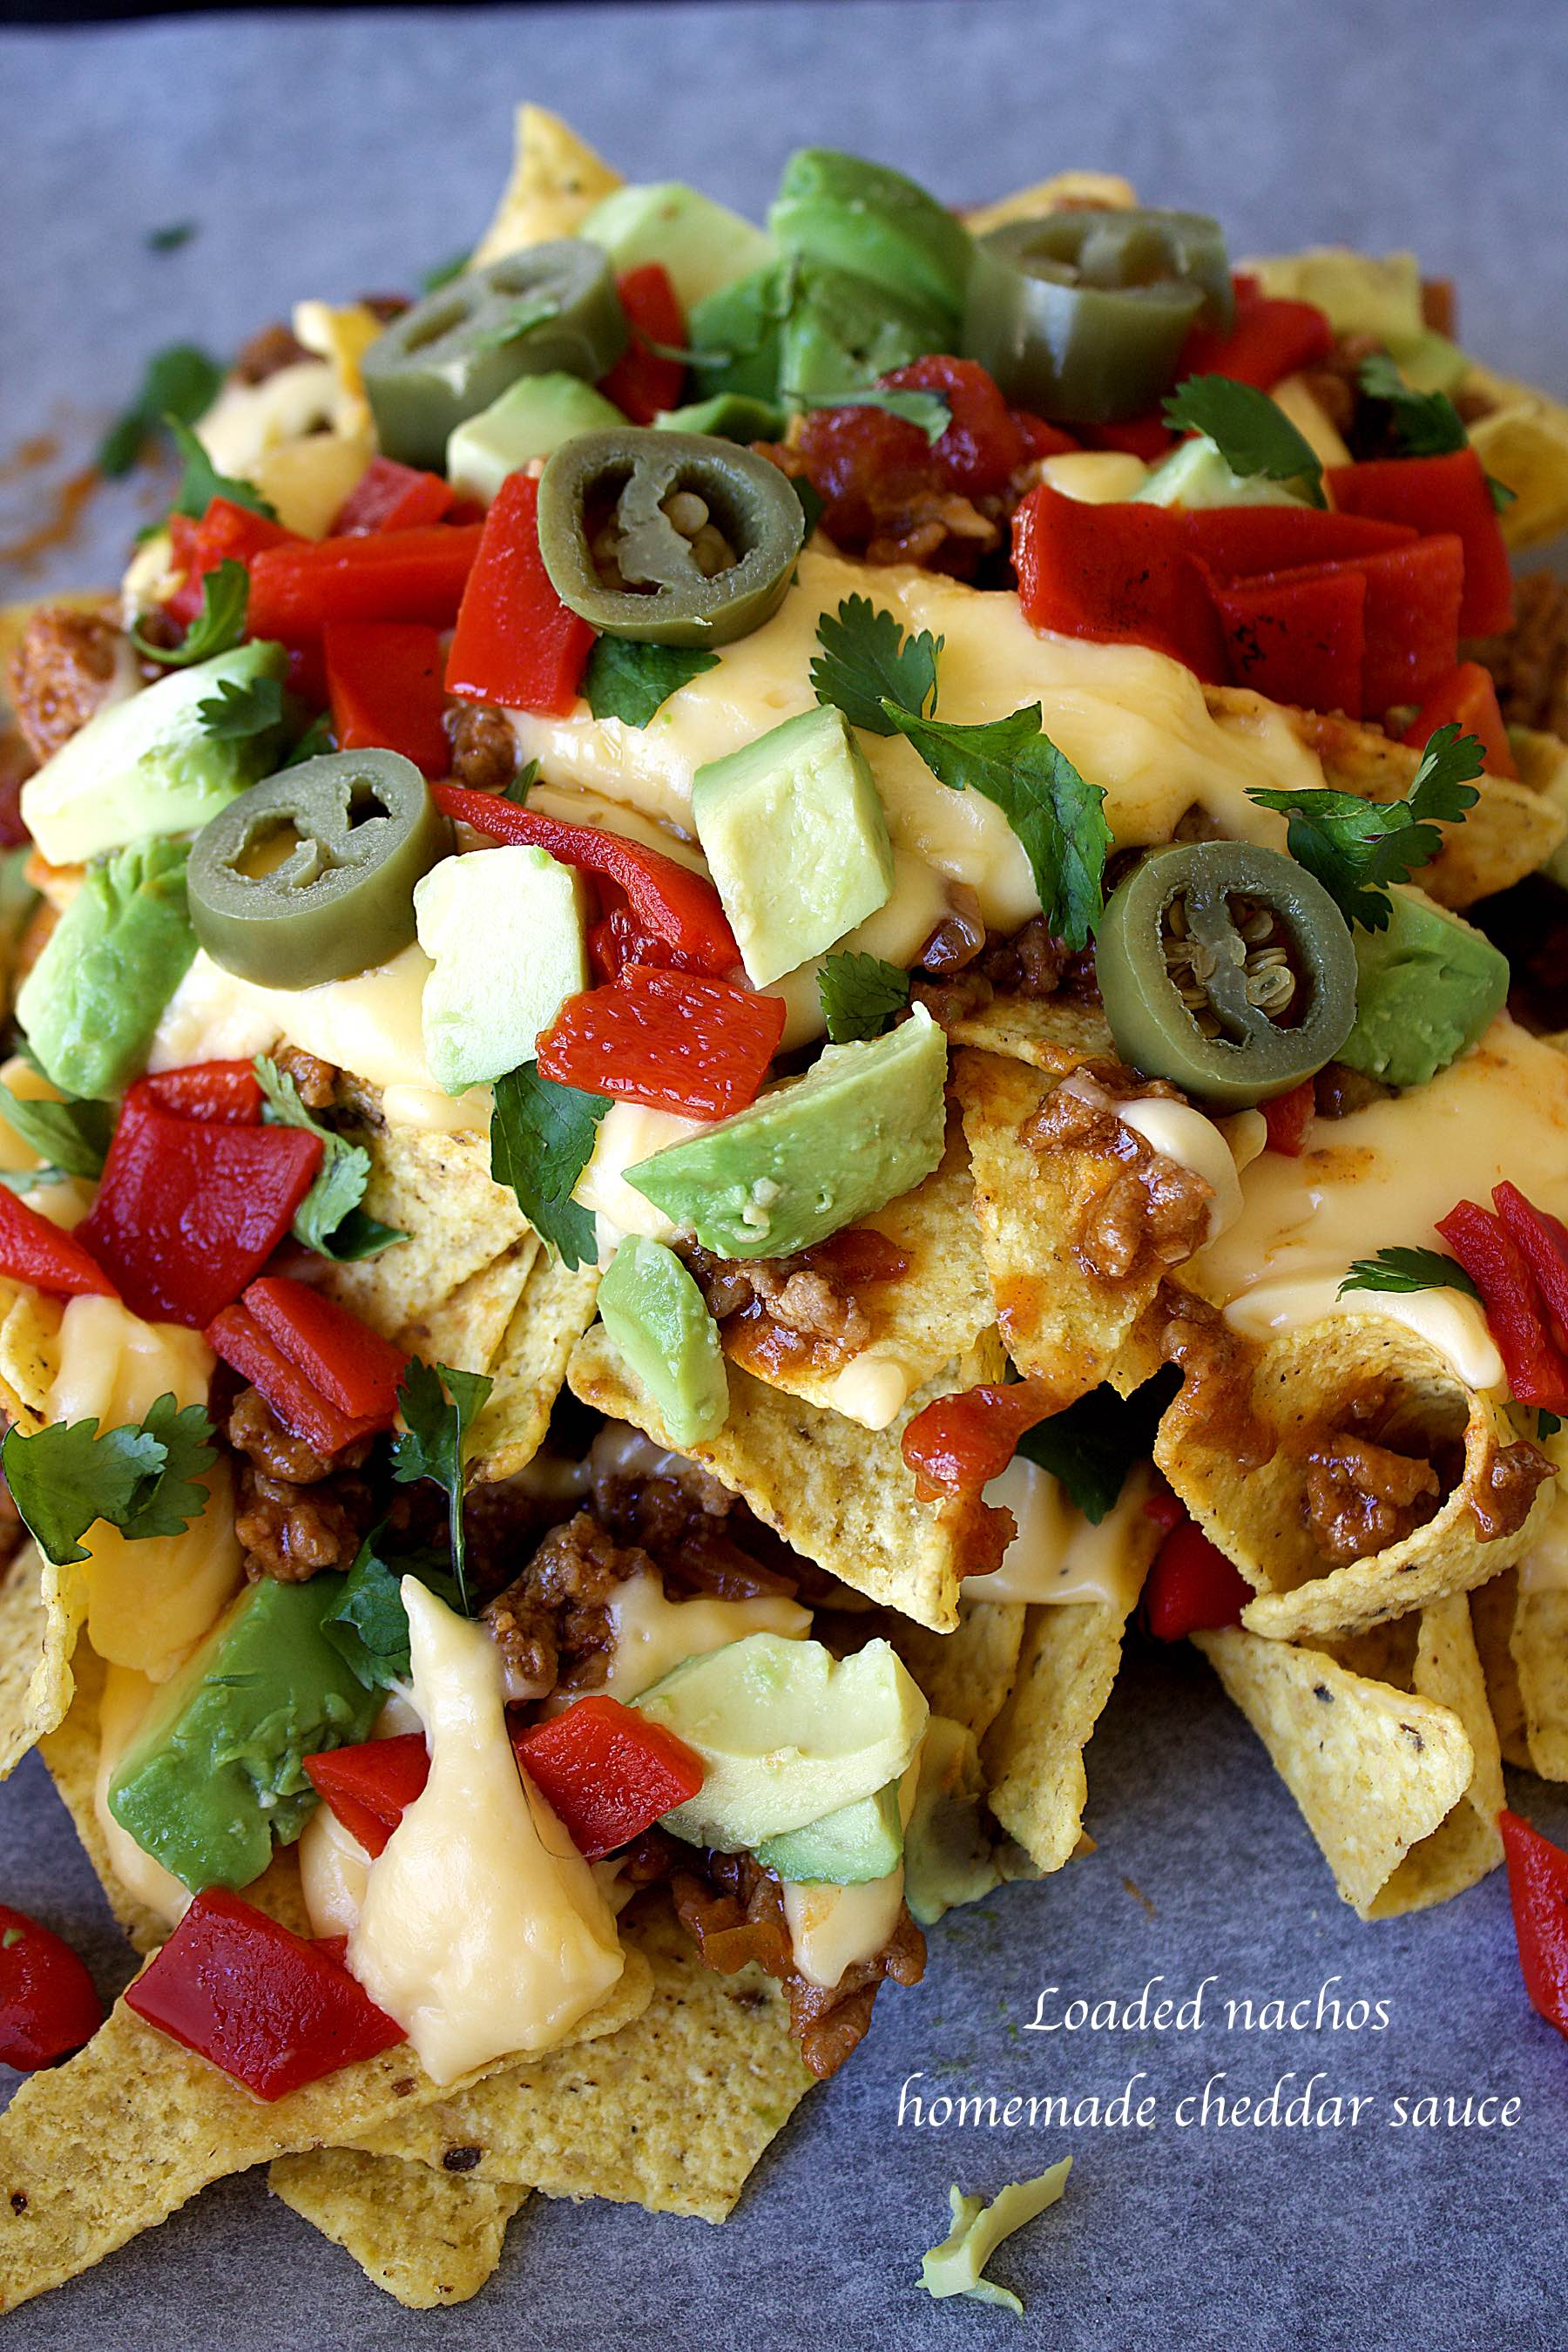 Loaded nachos with homemade cheddar sauce